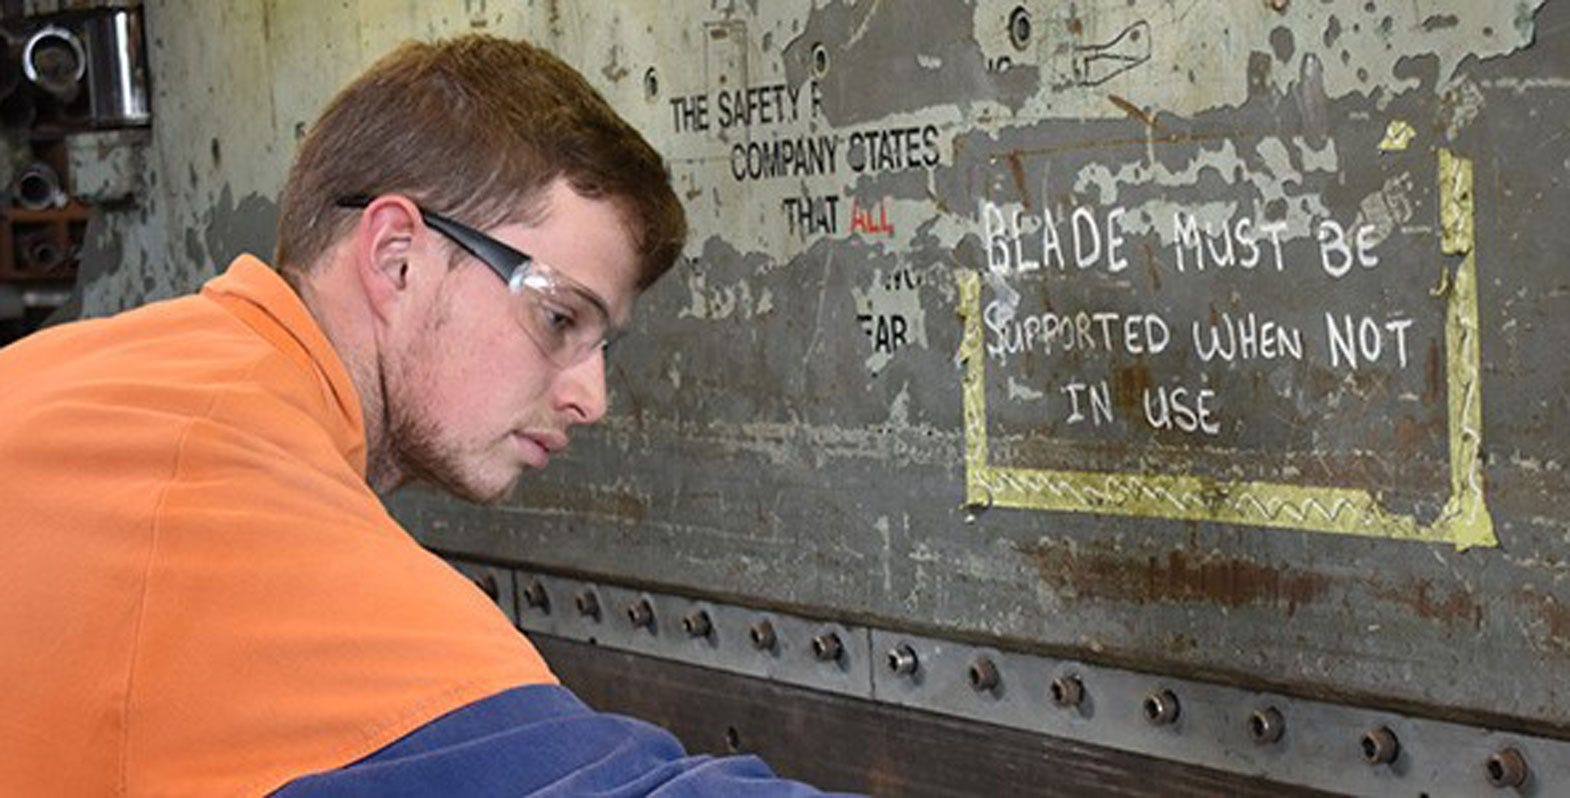 Everything you need to know about eye protection safety standards